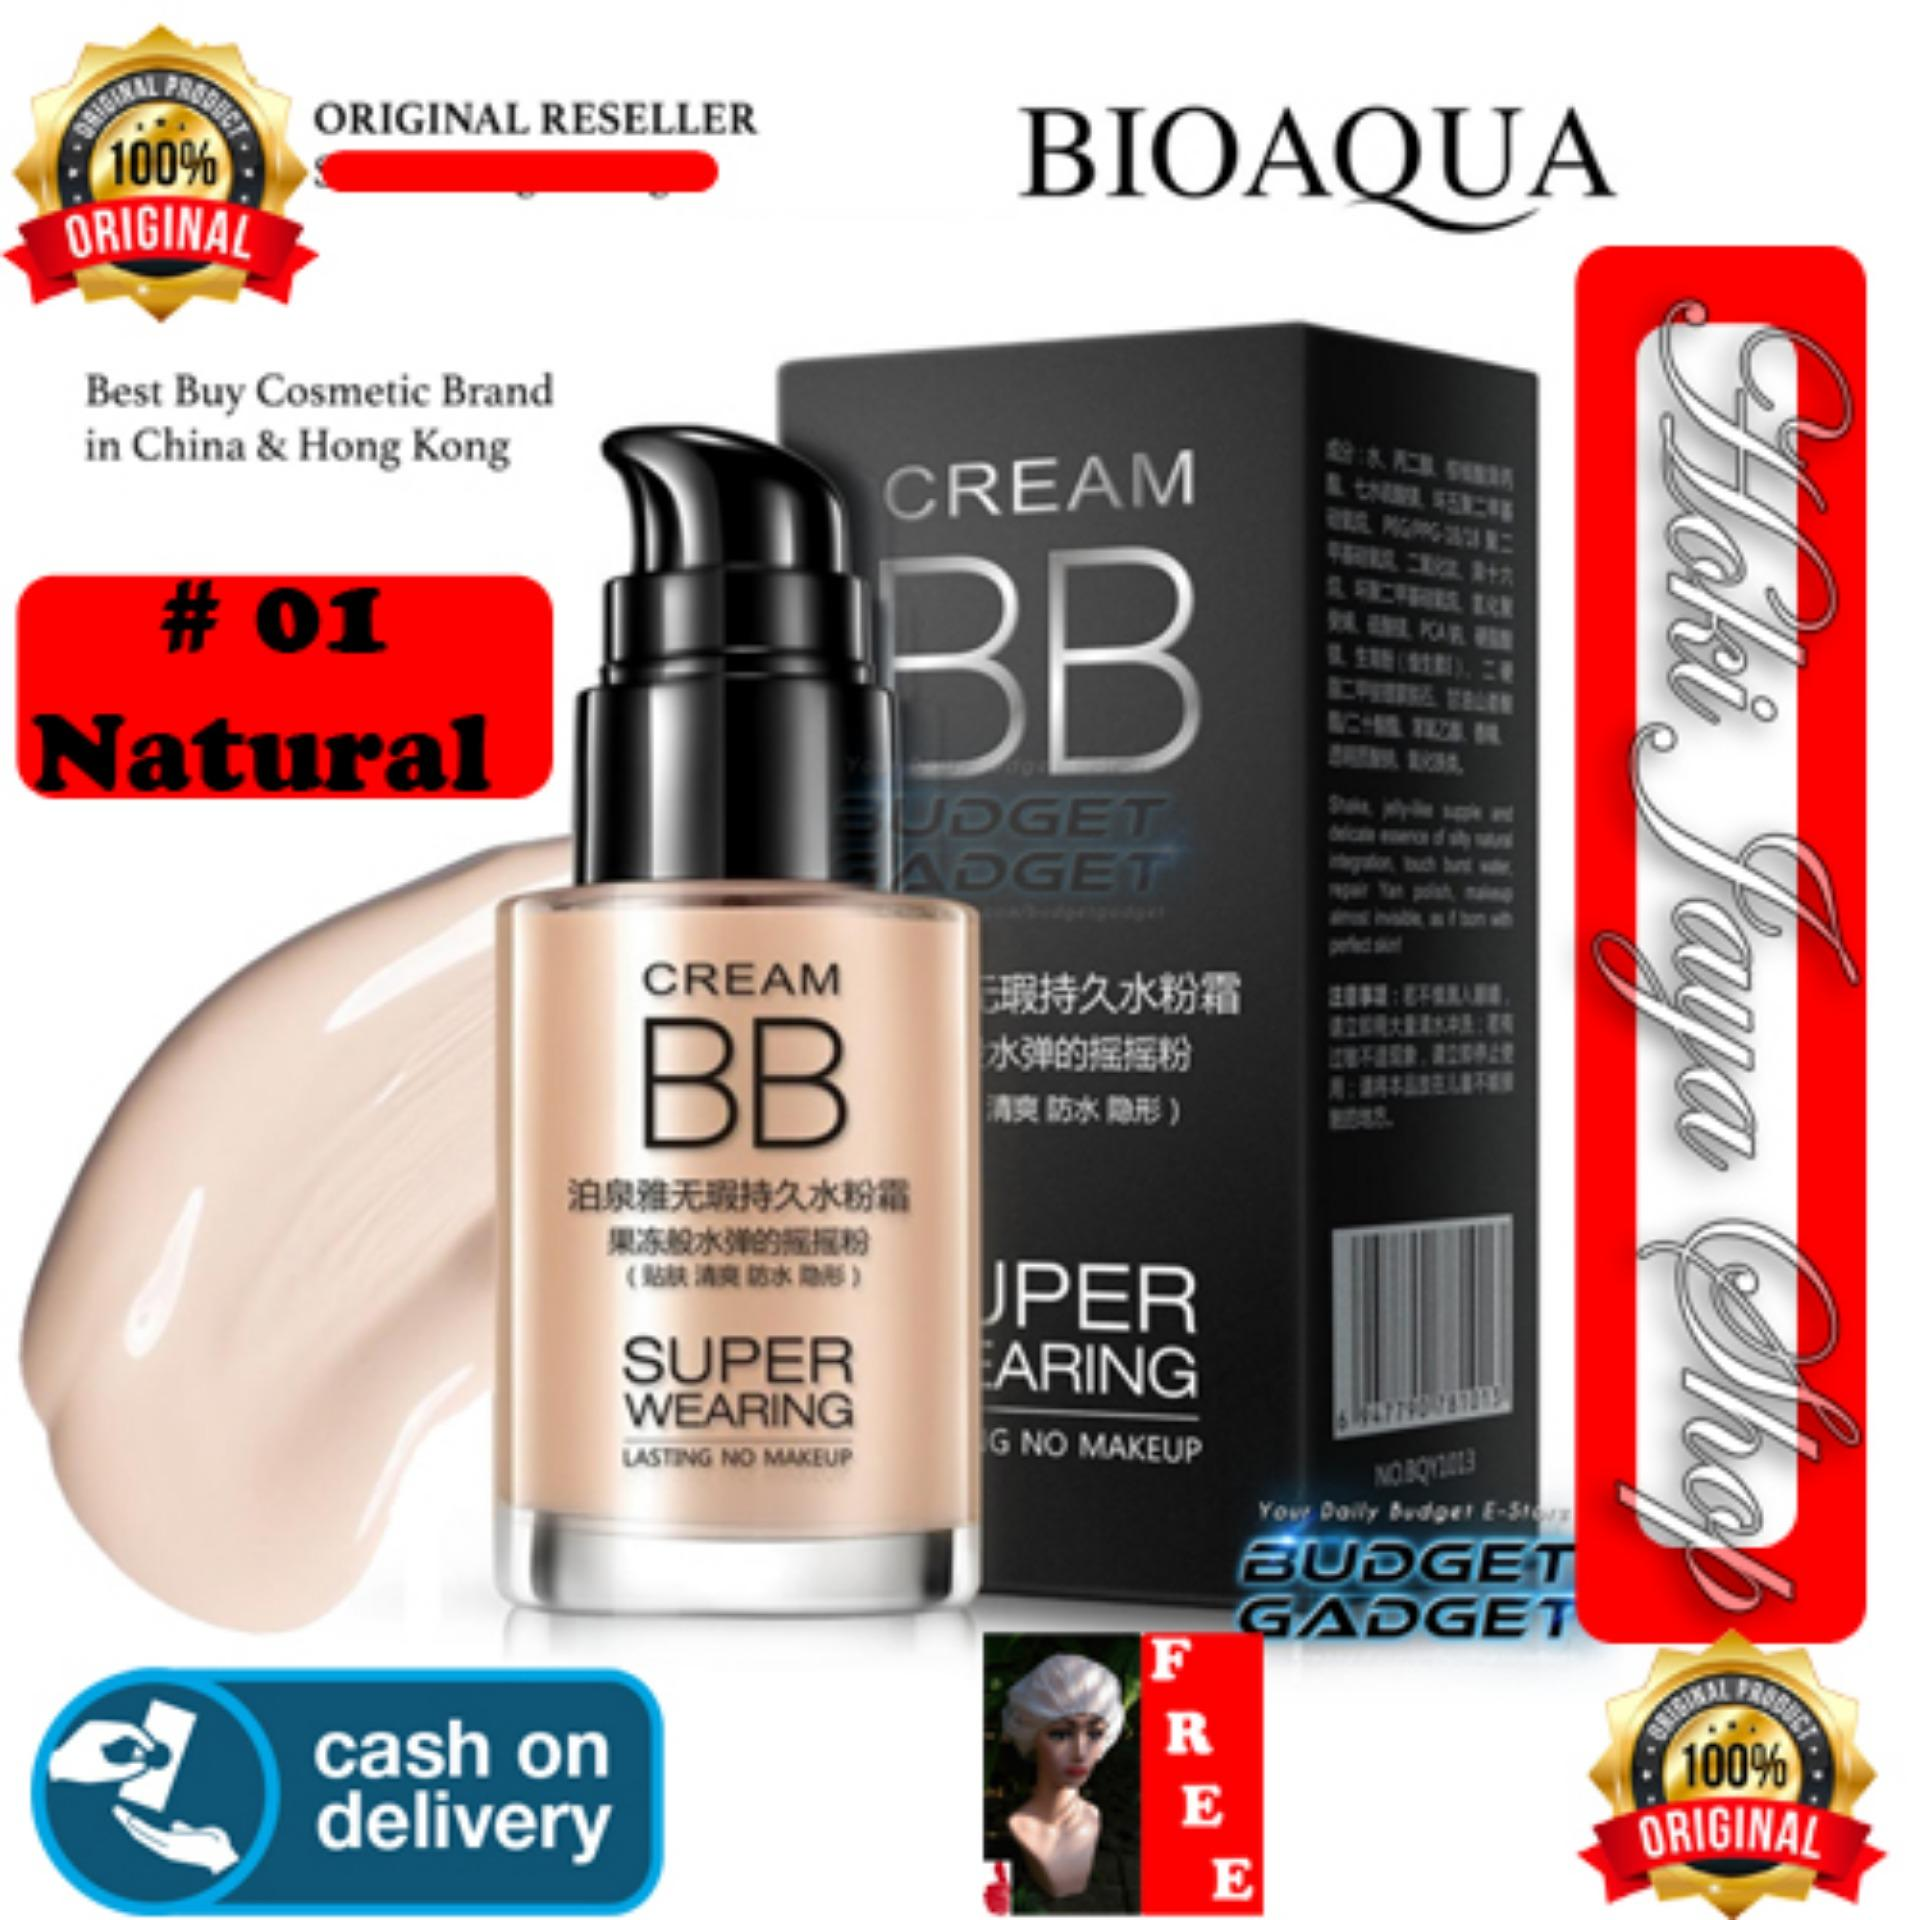 HOKI COD - 01# NATURAL - Bioaqua BB Cream Super Wearing Lasting Concealer Foundation Make